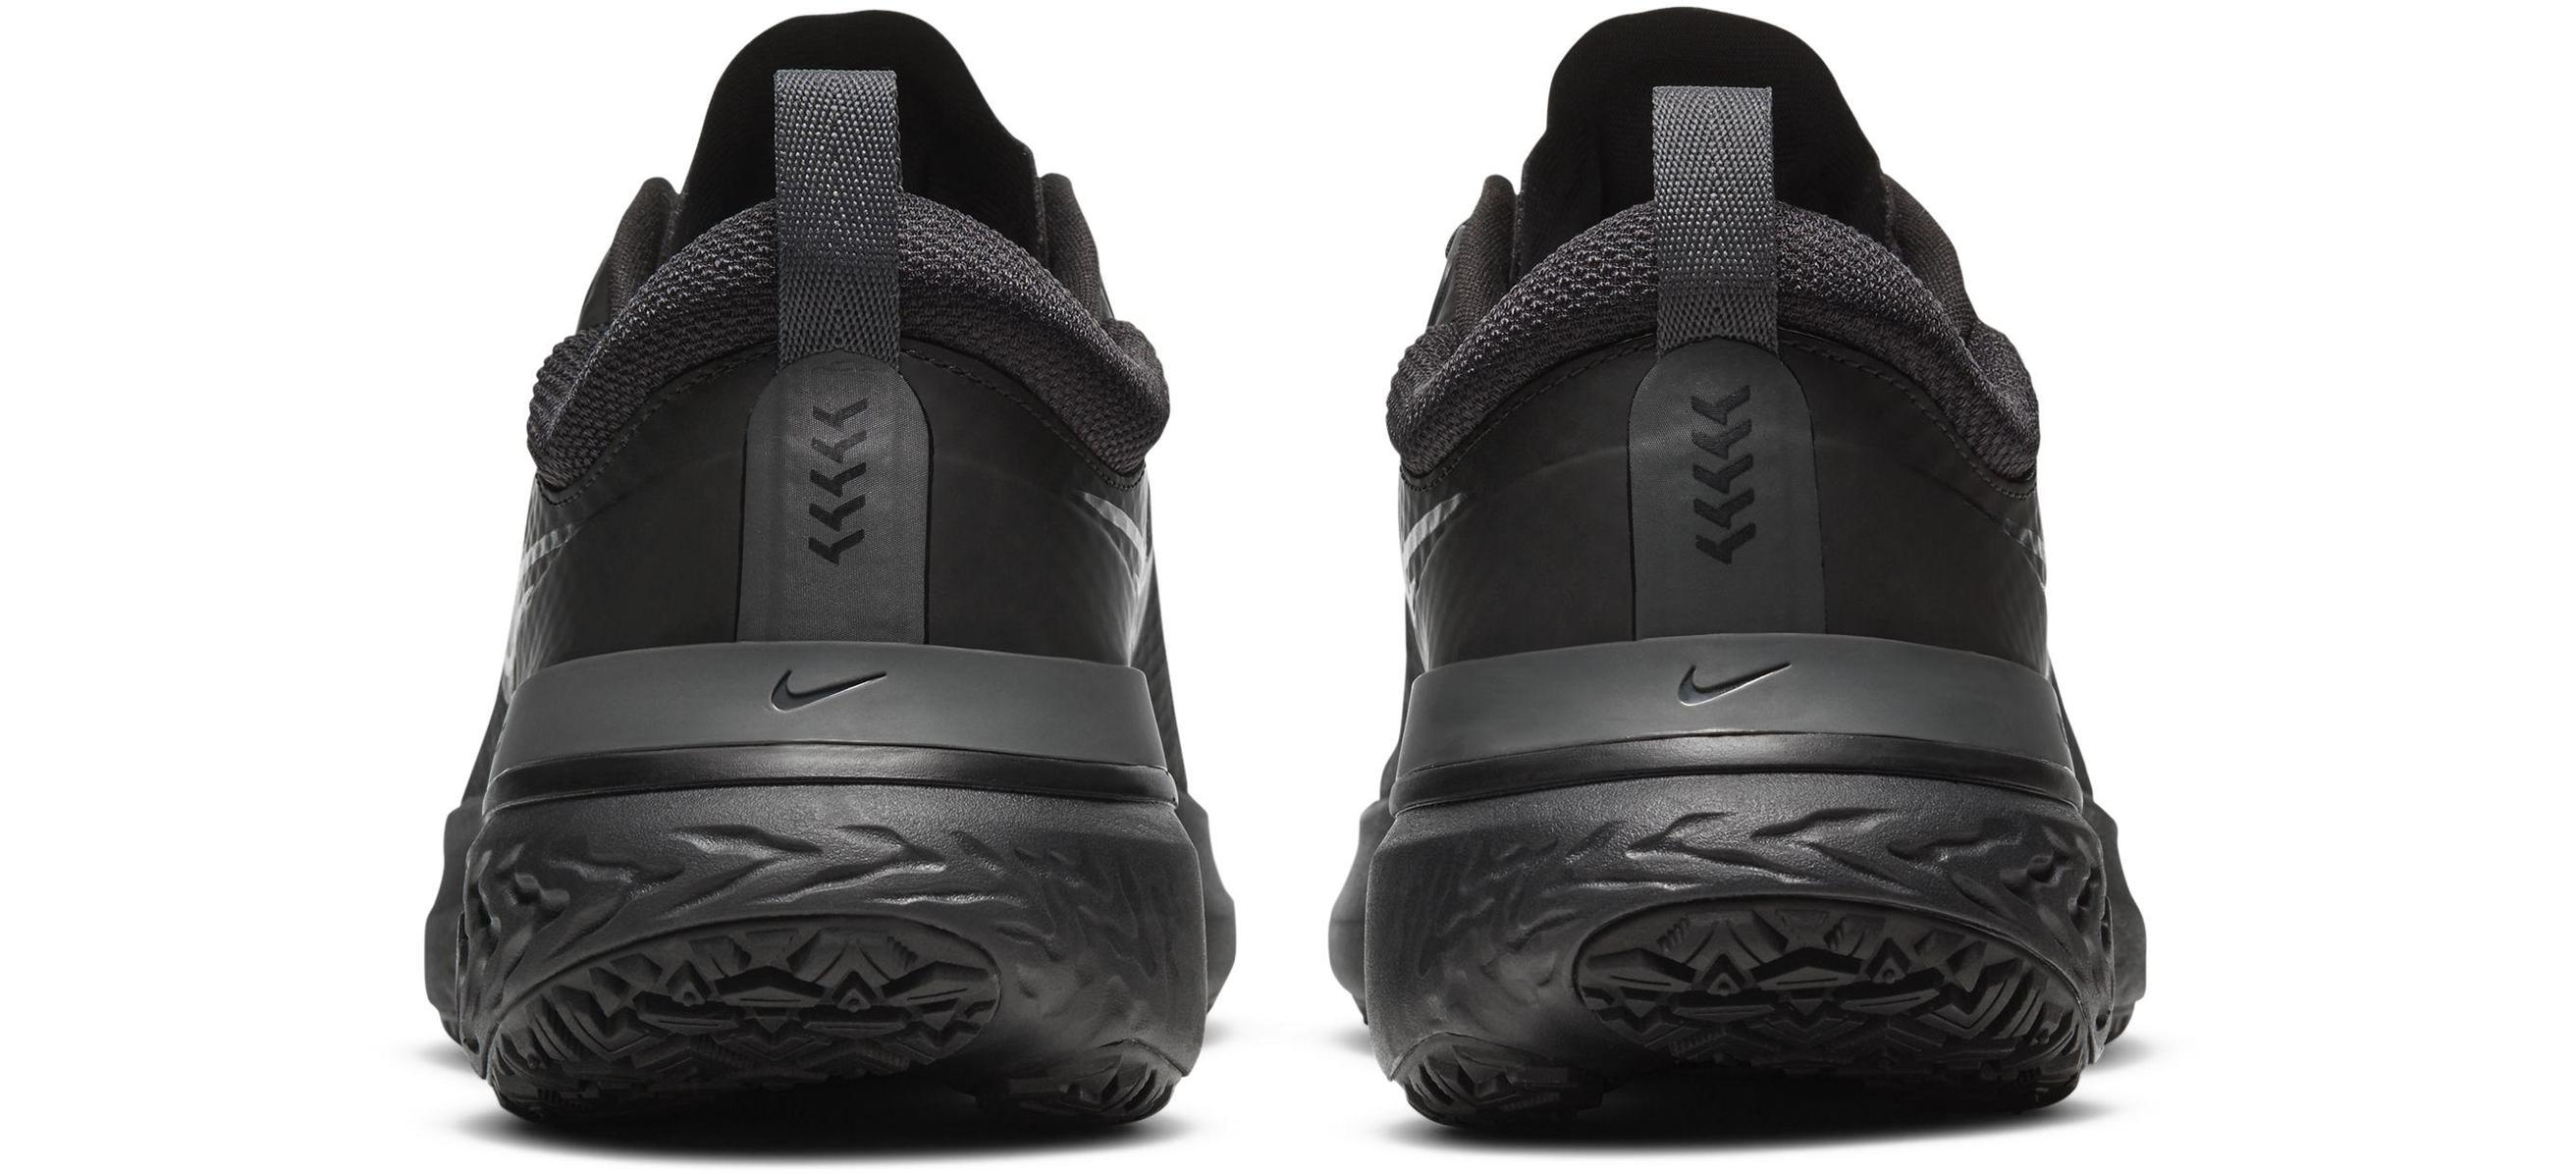 Nike React Miler Shield Black/Anthracite/Black